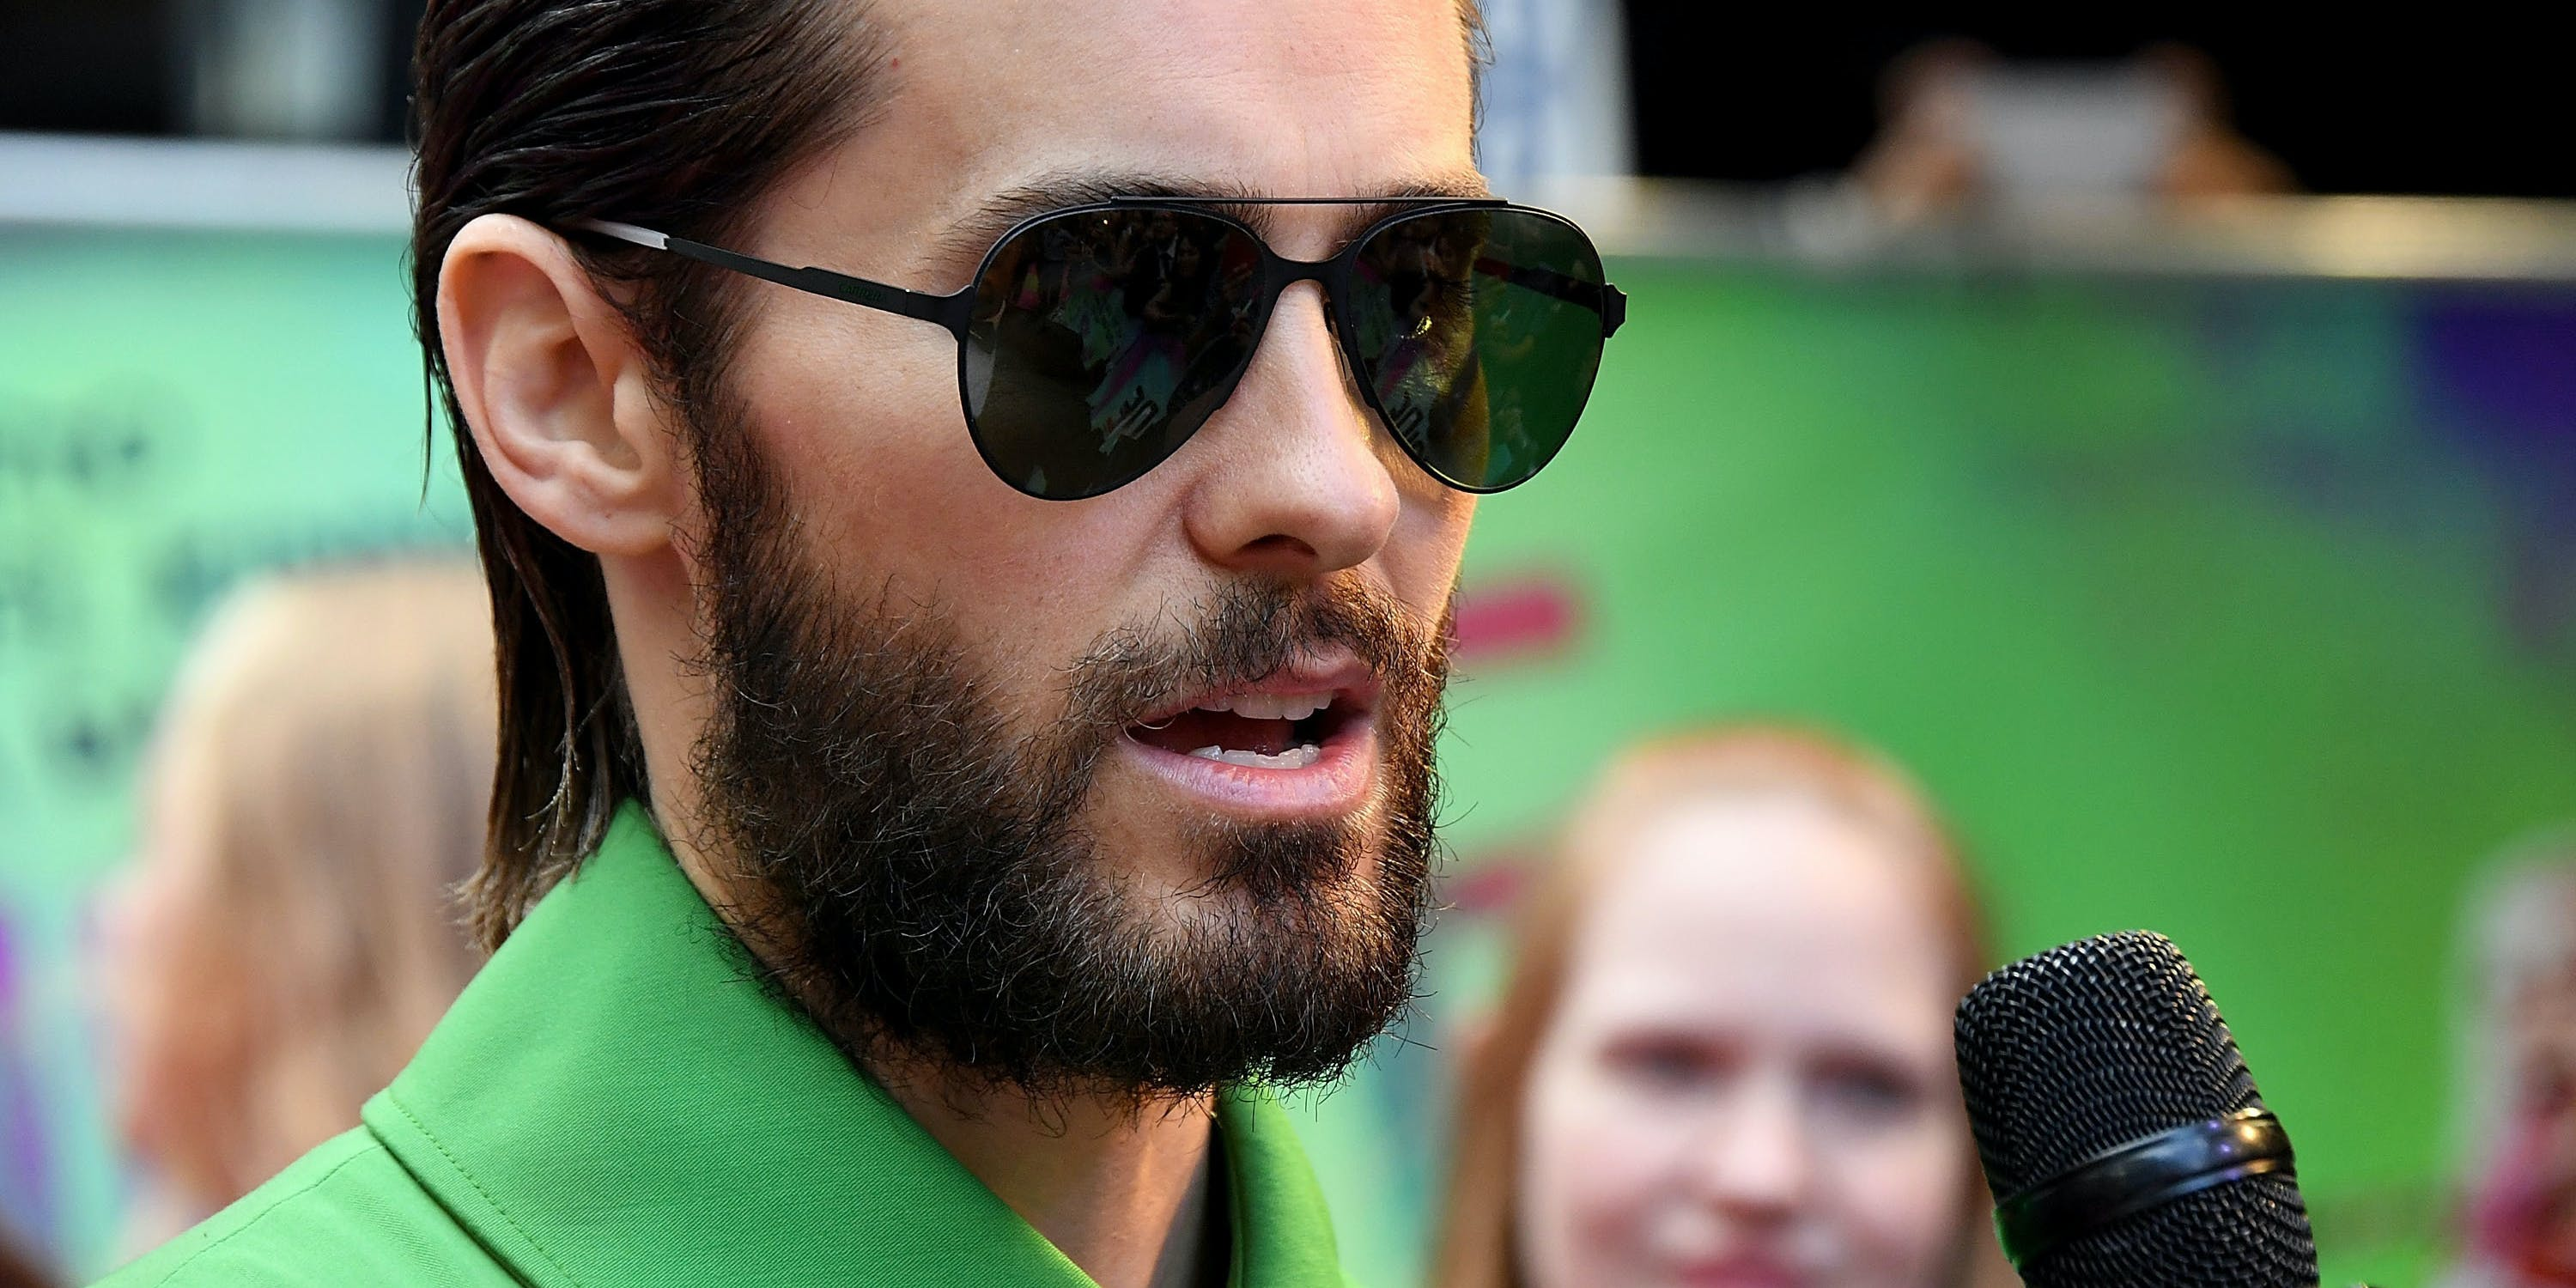 LONDON, ENGLAND - AUGUST 03:  Jared Leto attends the Suicide Squad European Premiere sponsored by Carrera on August 3, 2016 in London, England.  (Photo by Stuart C. Wilson/Getty Images for carrera)